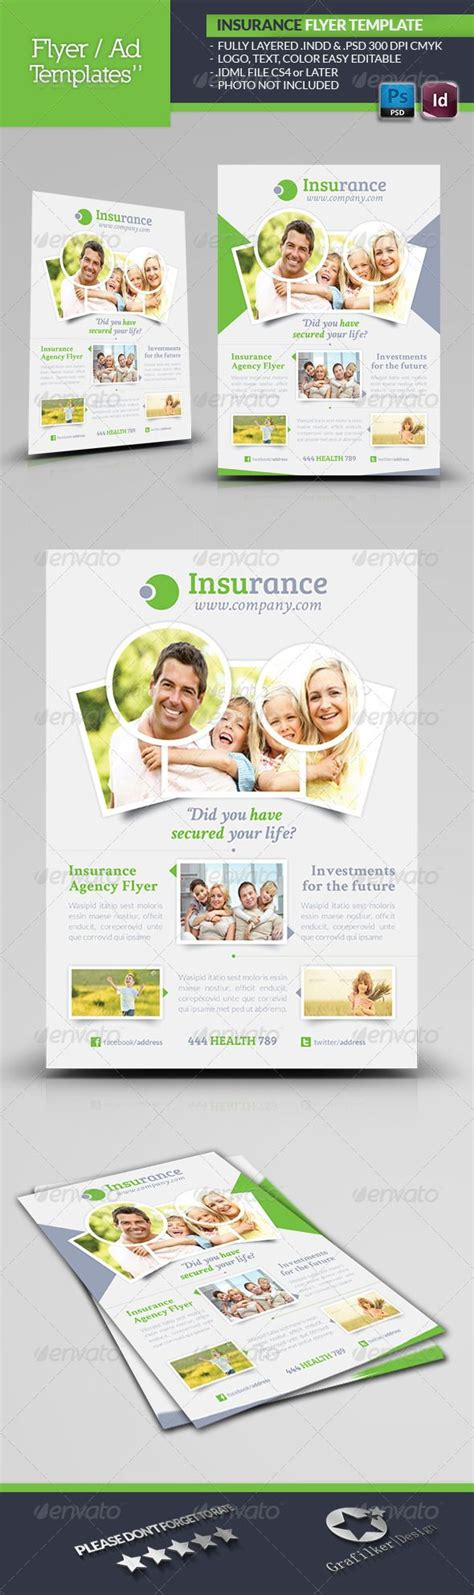 209 Best Images About Flyer On Pinterest Brew Pub Fonts And Restaurant Insurance Flyer Templates